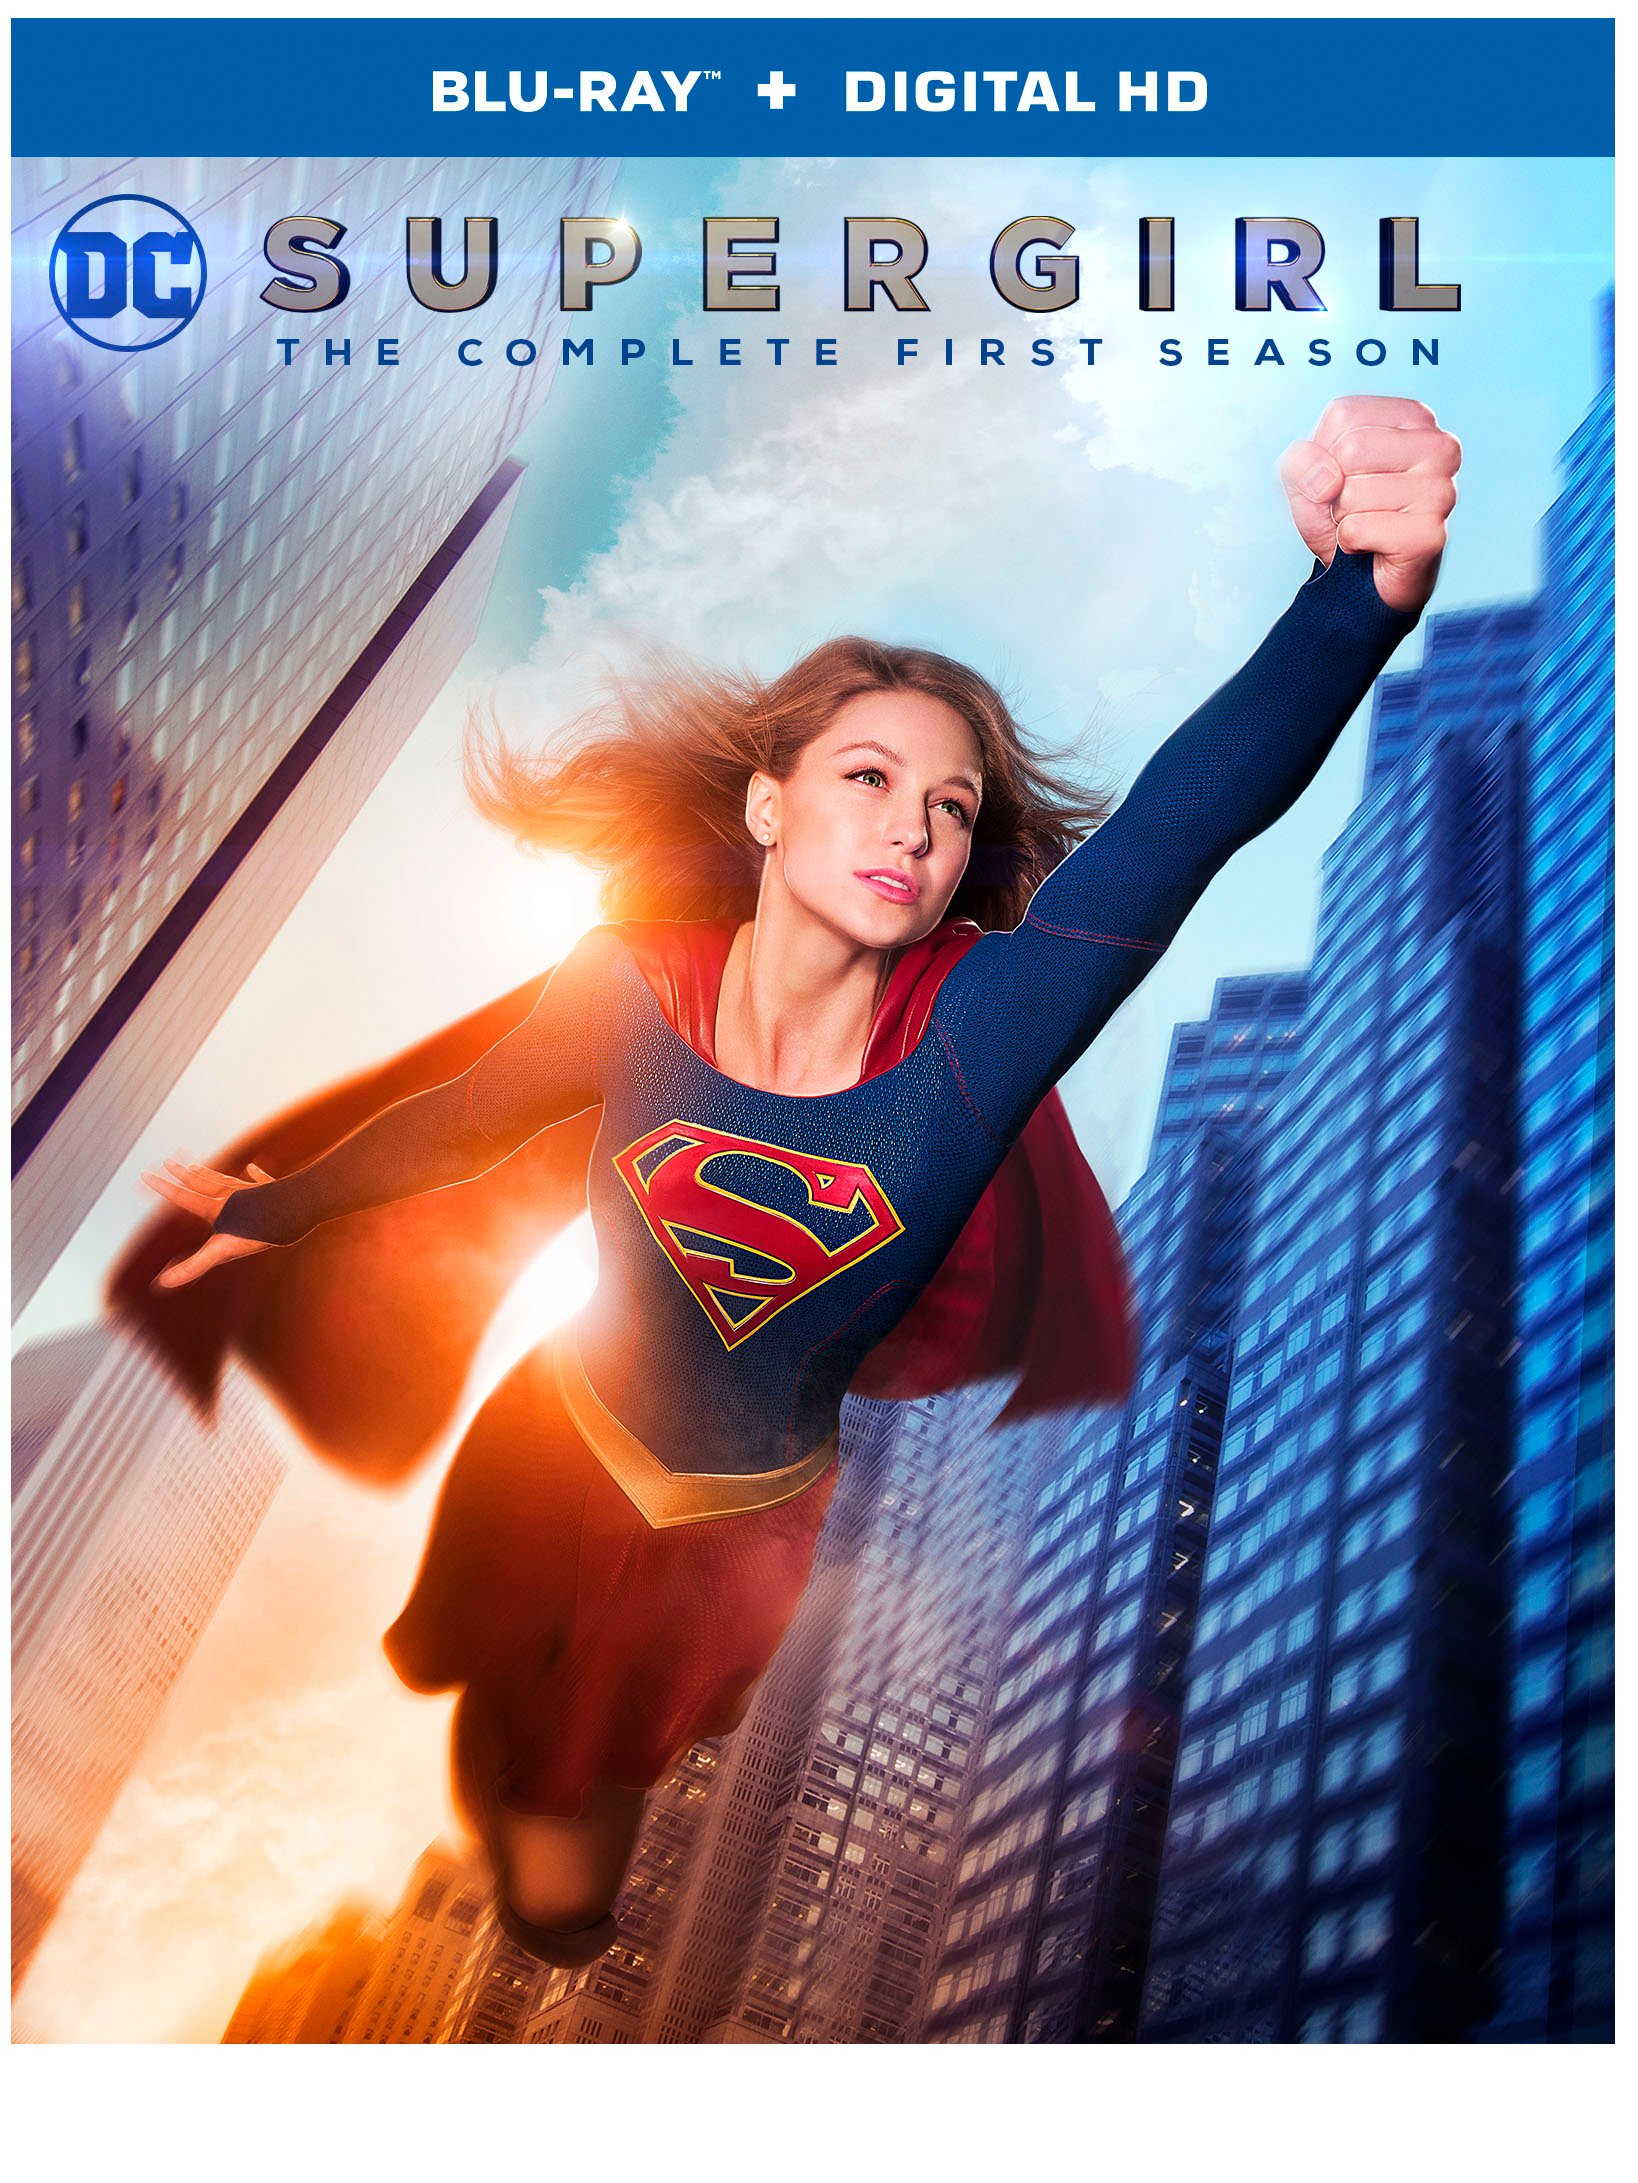 Supergirl Season 1 Blu-Ray Cover Art And Special Features Revealed